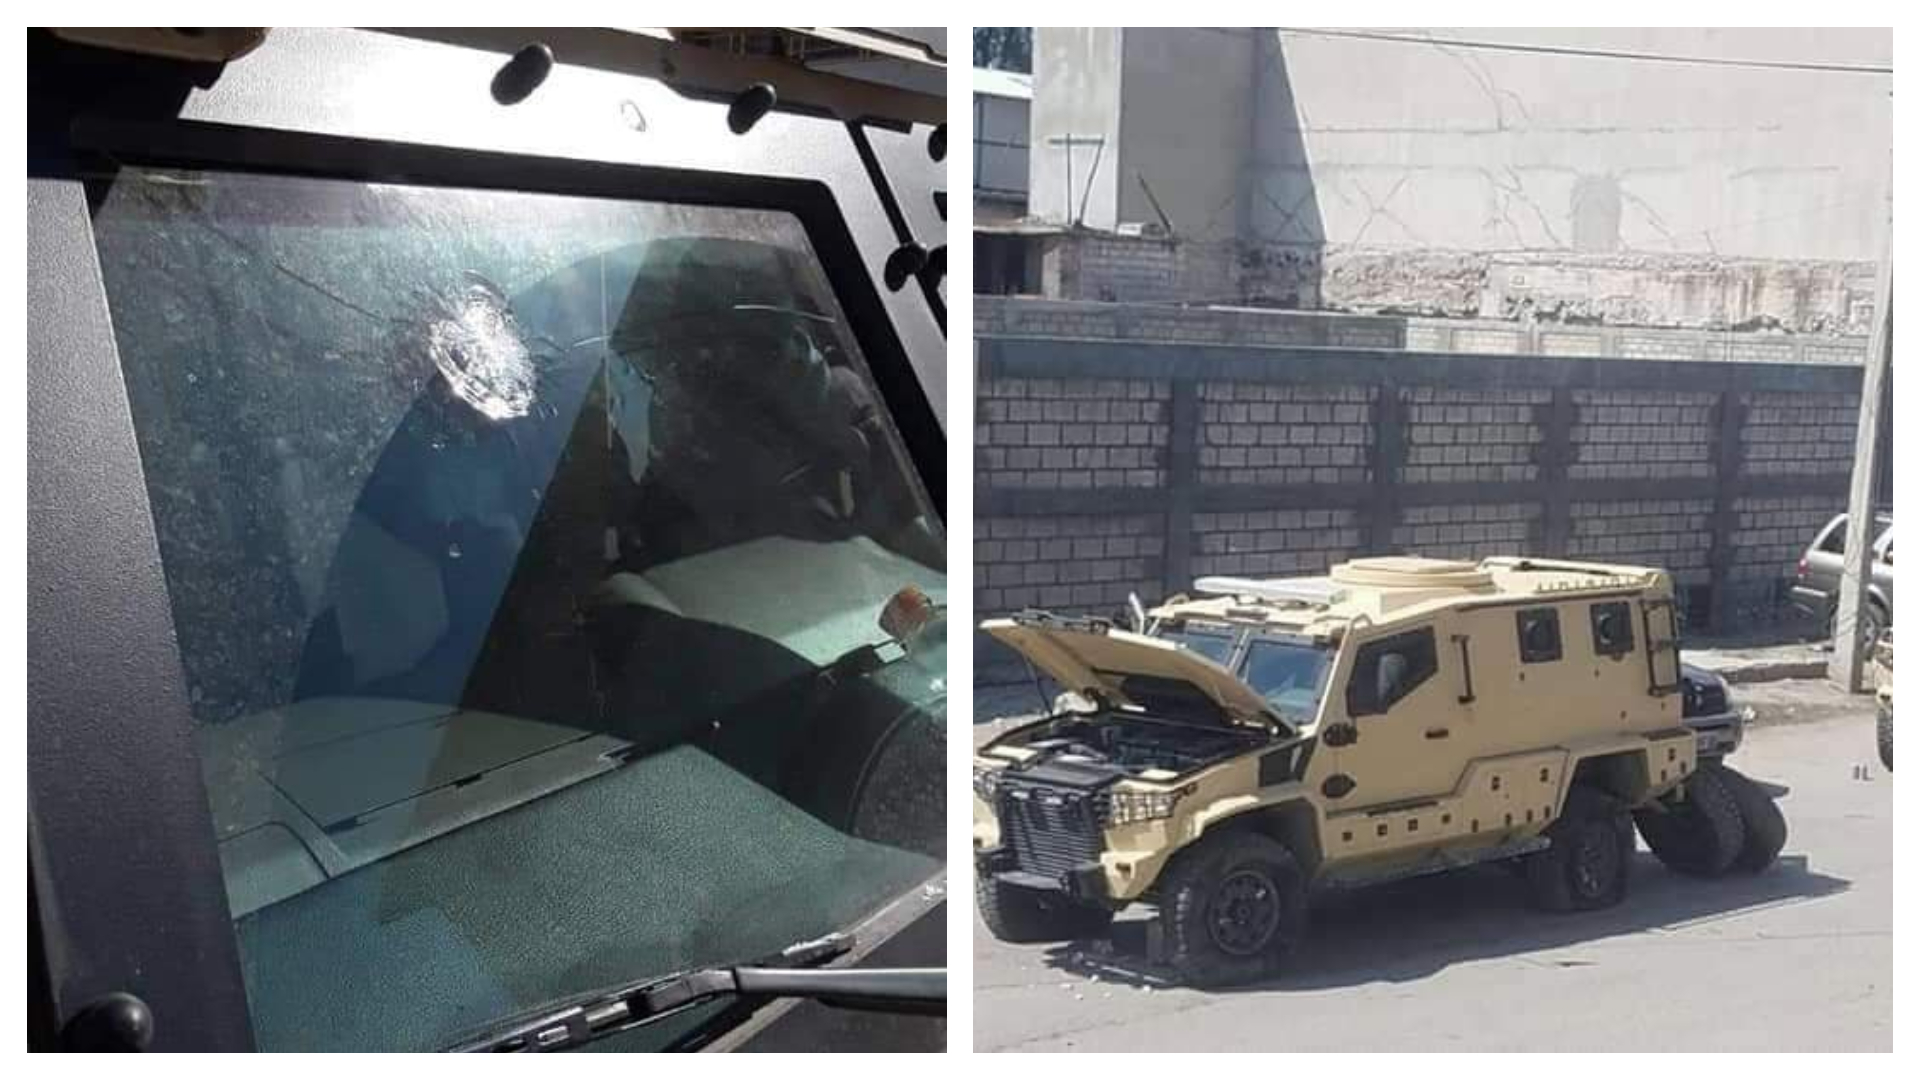 Photo: Bullet hole on the windshield of Haiti new police armored vehicle